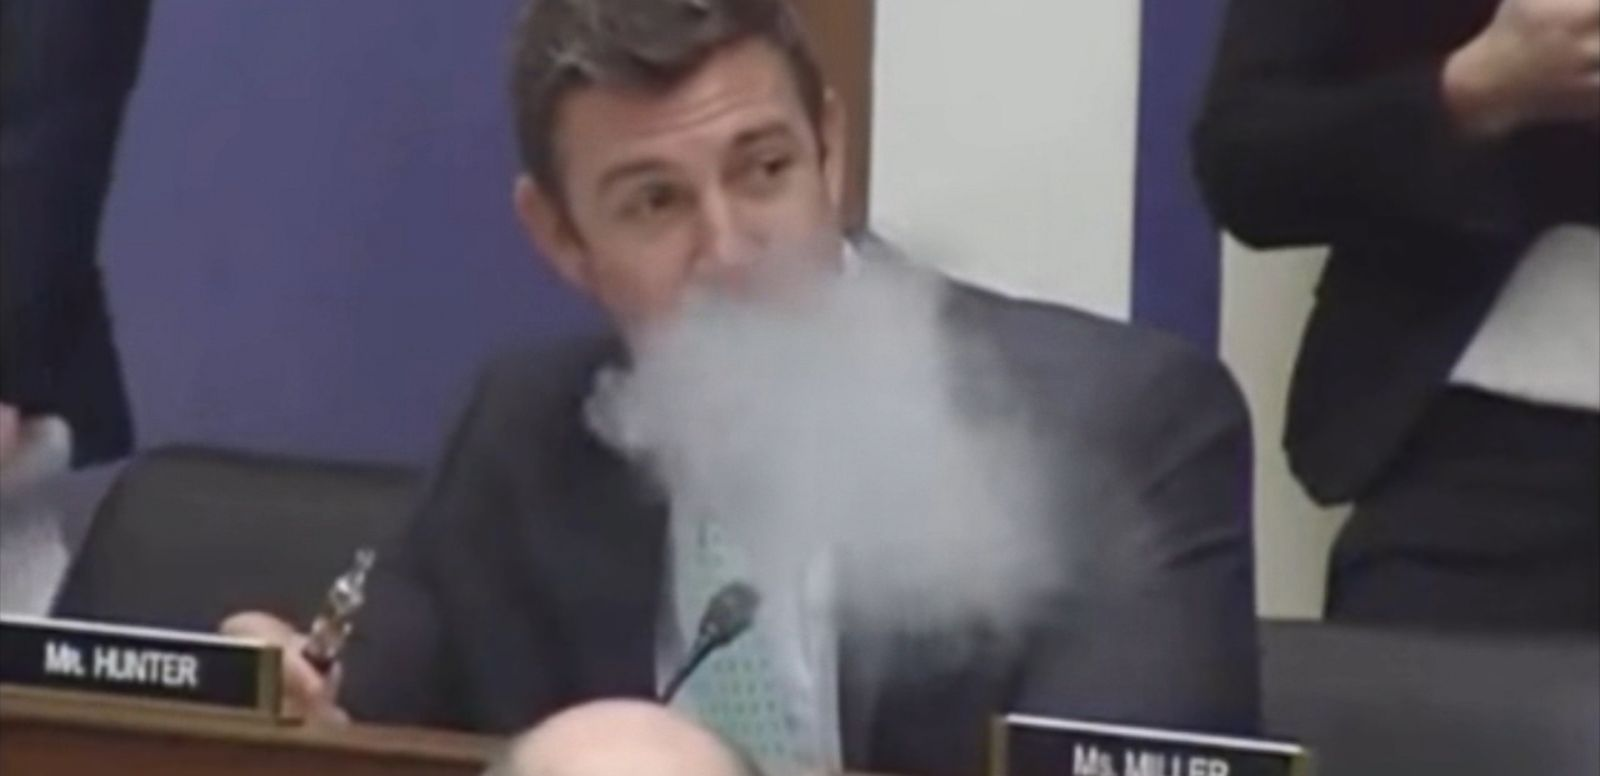 VIDEO: Rep. Duncan Hunter busted out his vaporizer in a House Transportation Committee hearing today while debating an amendment from Rep. Eleanor Holmes Norton, D-DC, that would formally ban the use of vaporizers and e-cigarettes on airplanes.